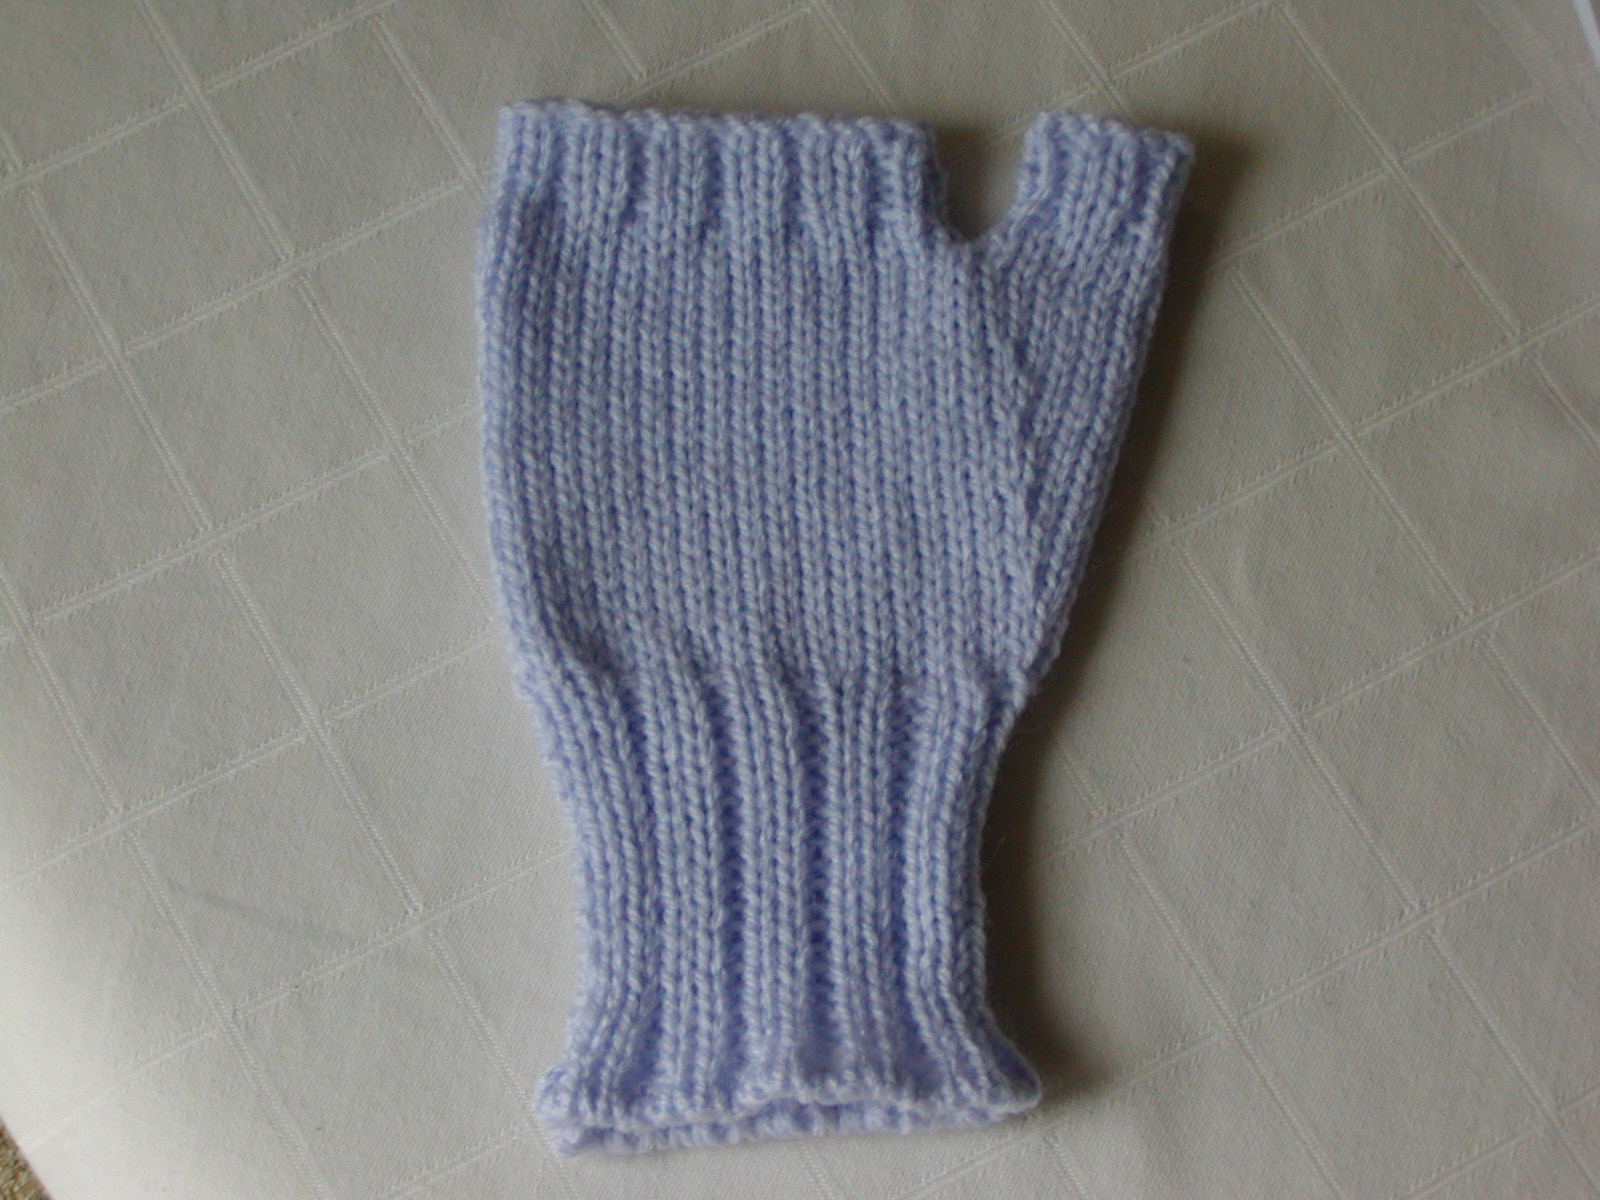 Knitting Pattern Fingerless Mittens Two Needles : Addicted to Machine Knitting: Fingerless Gloves Machine Knitting Pattern